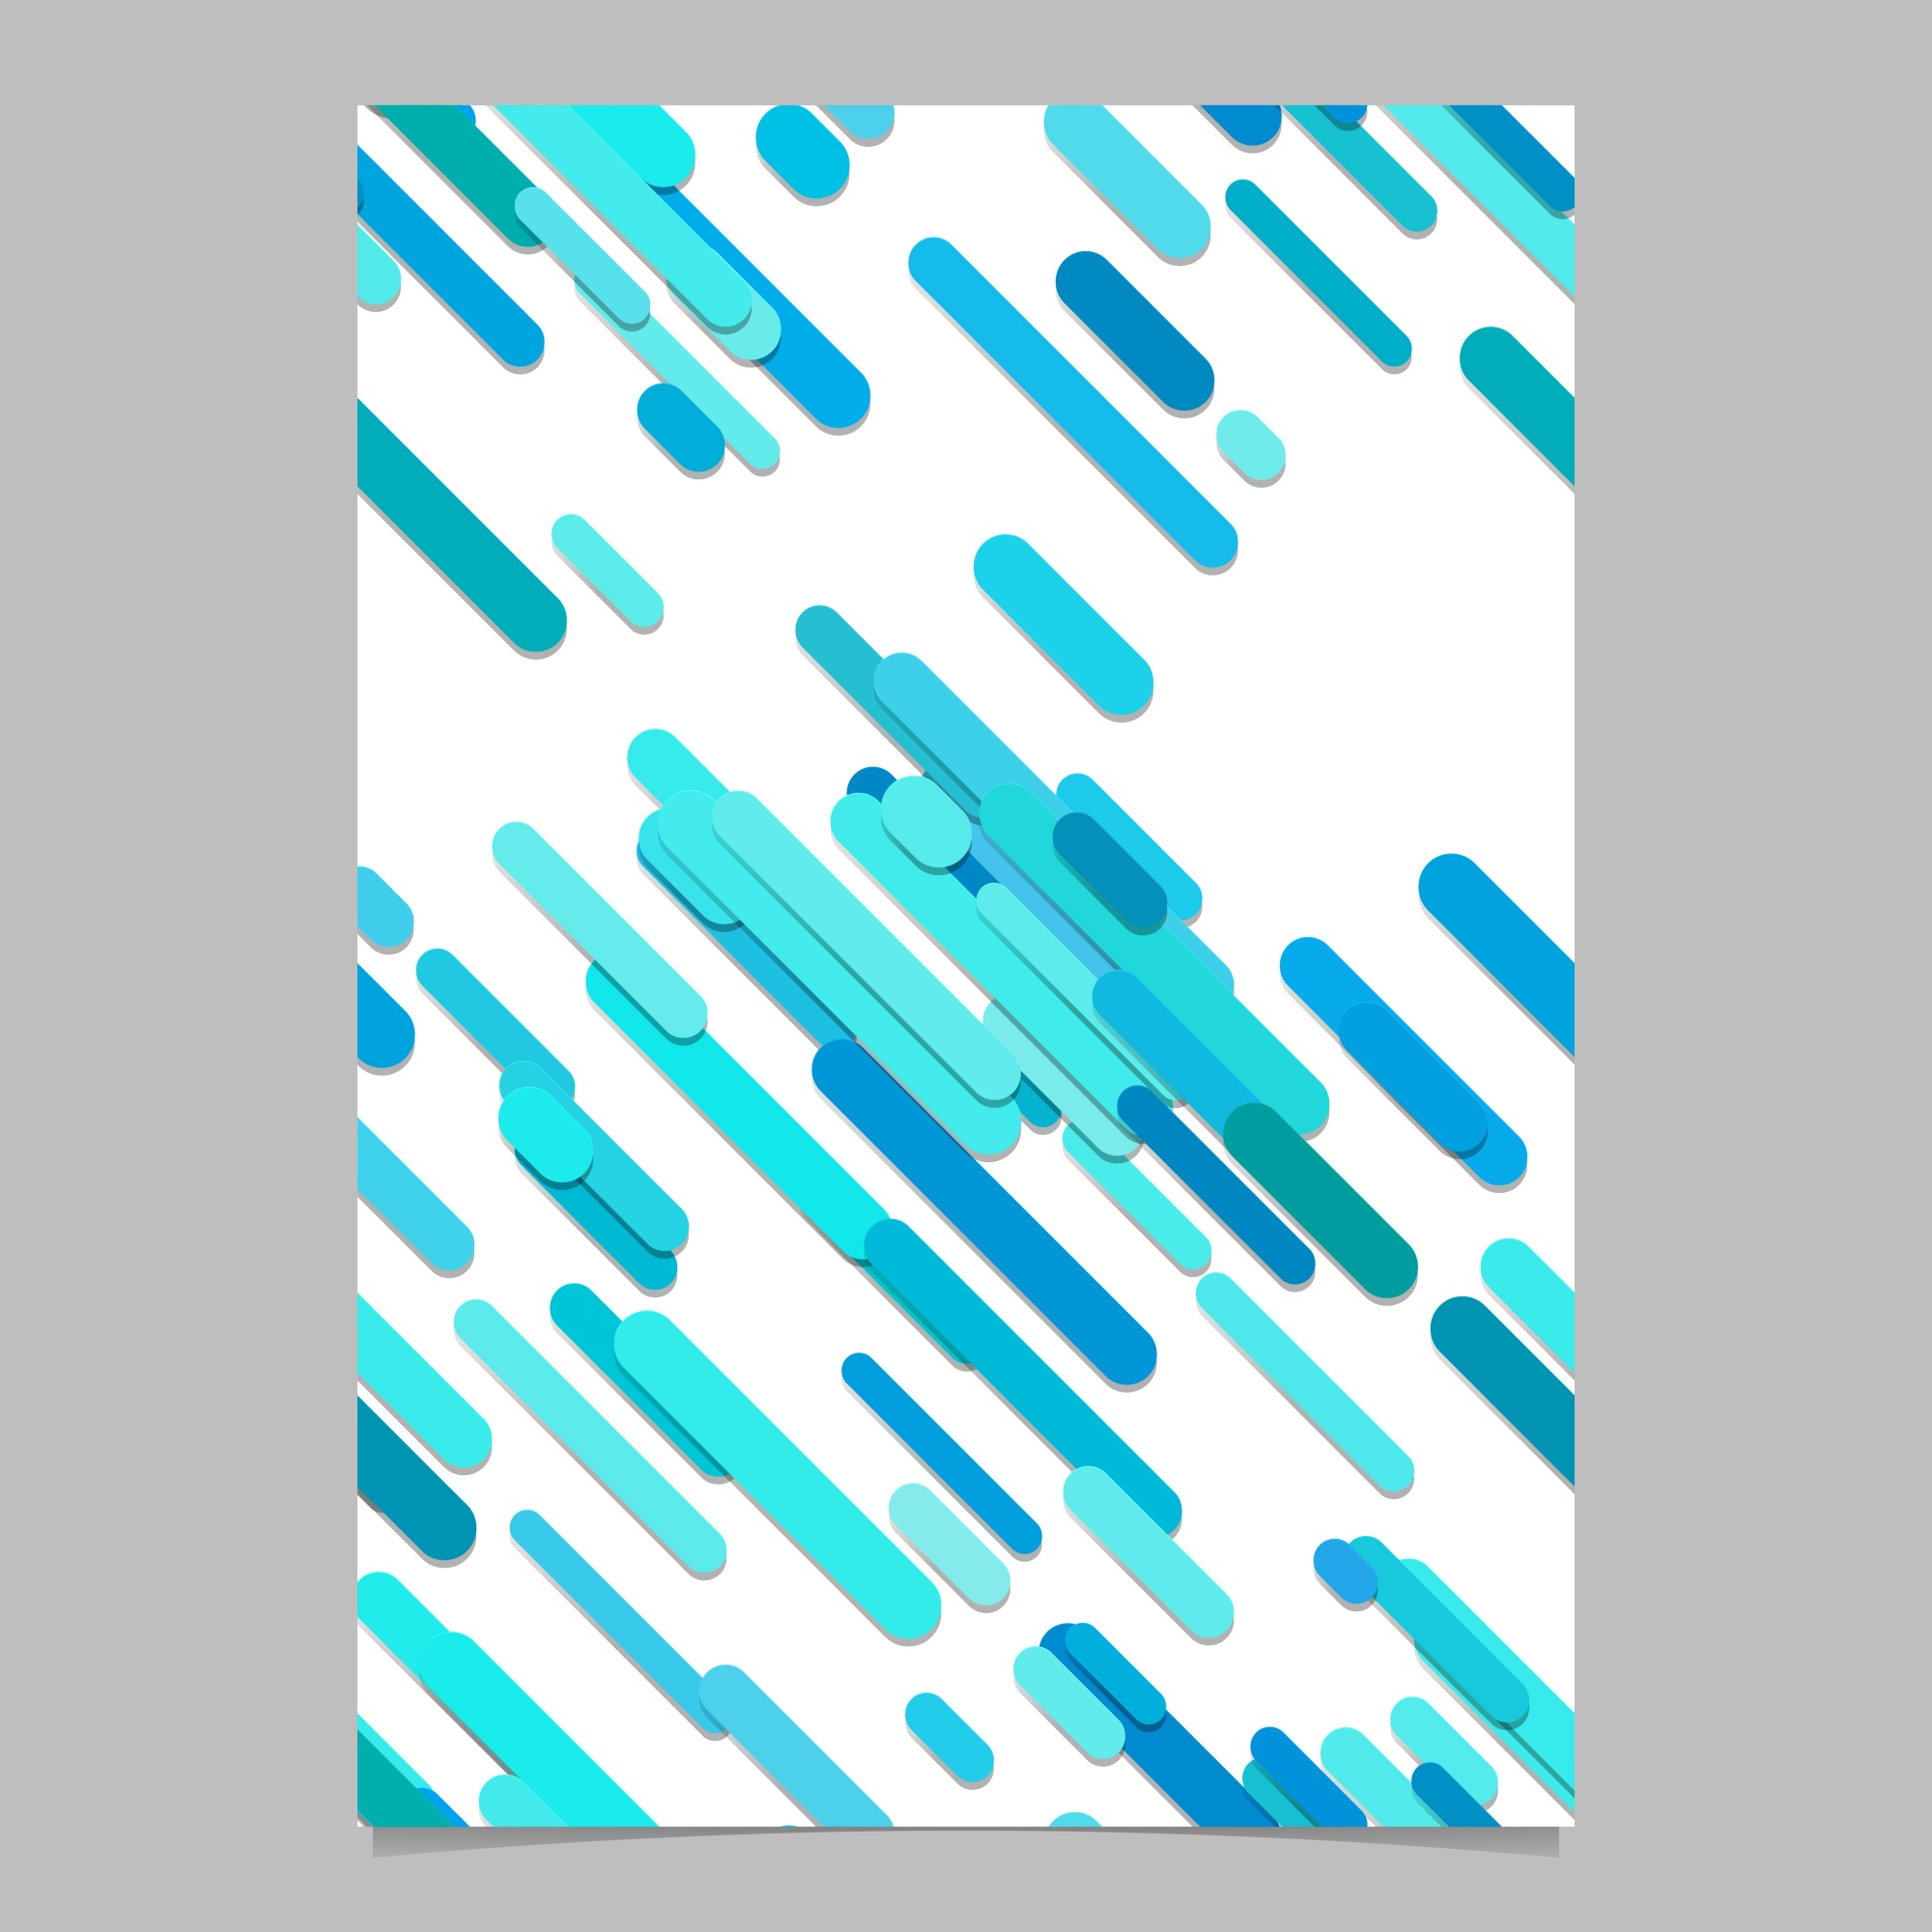 Seamless random diagonal stripe pattern flyer template - vector document background illustration with stripes in light blue tones